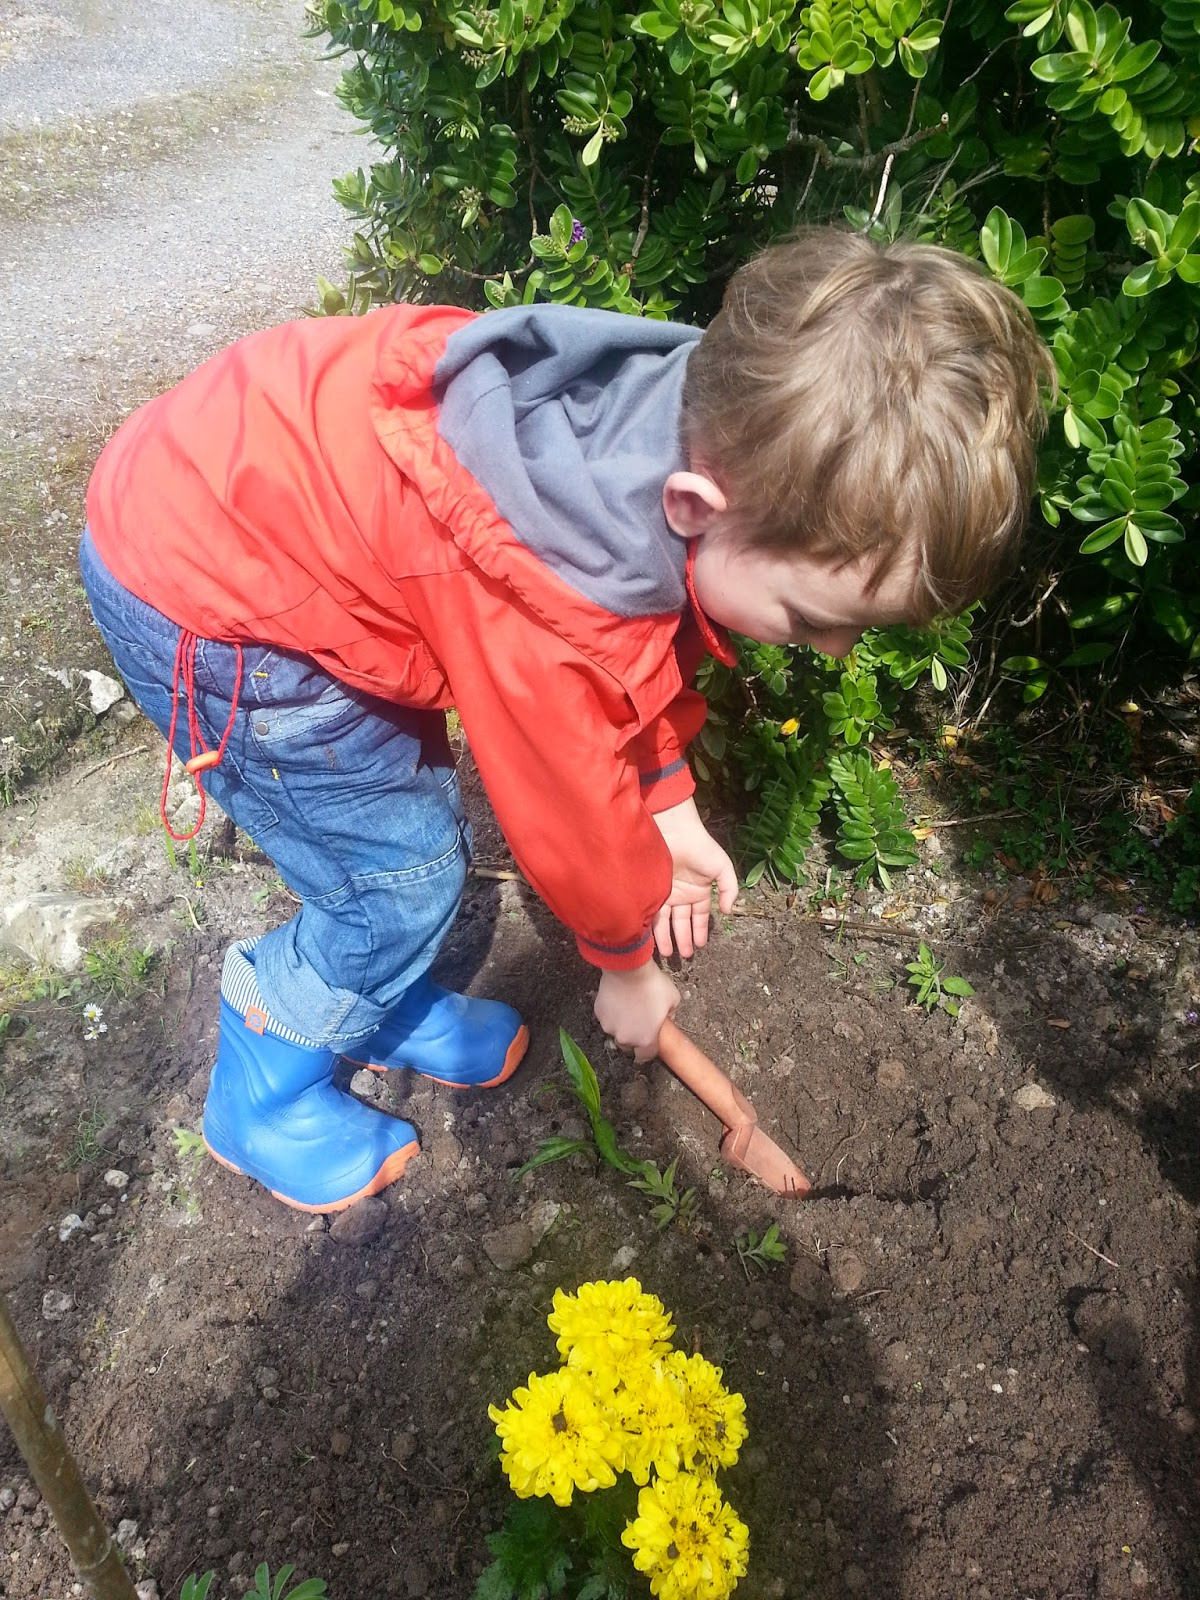 Young boy planting yellow flowers in soil